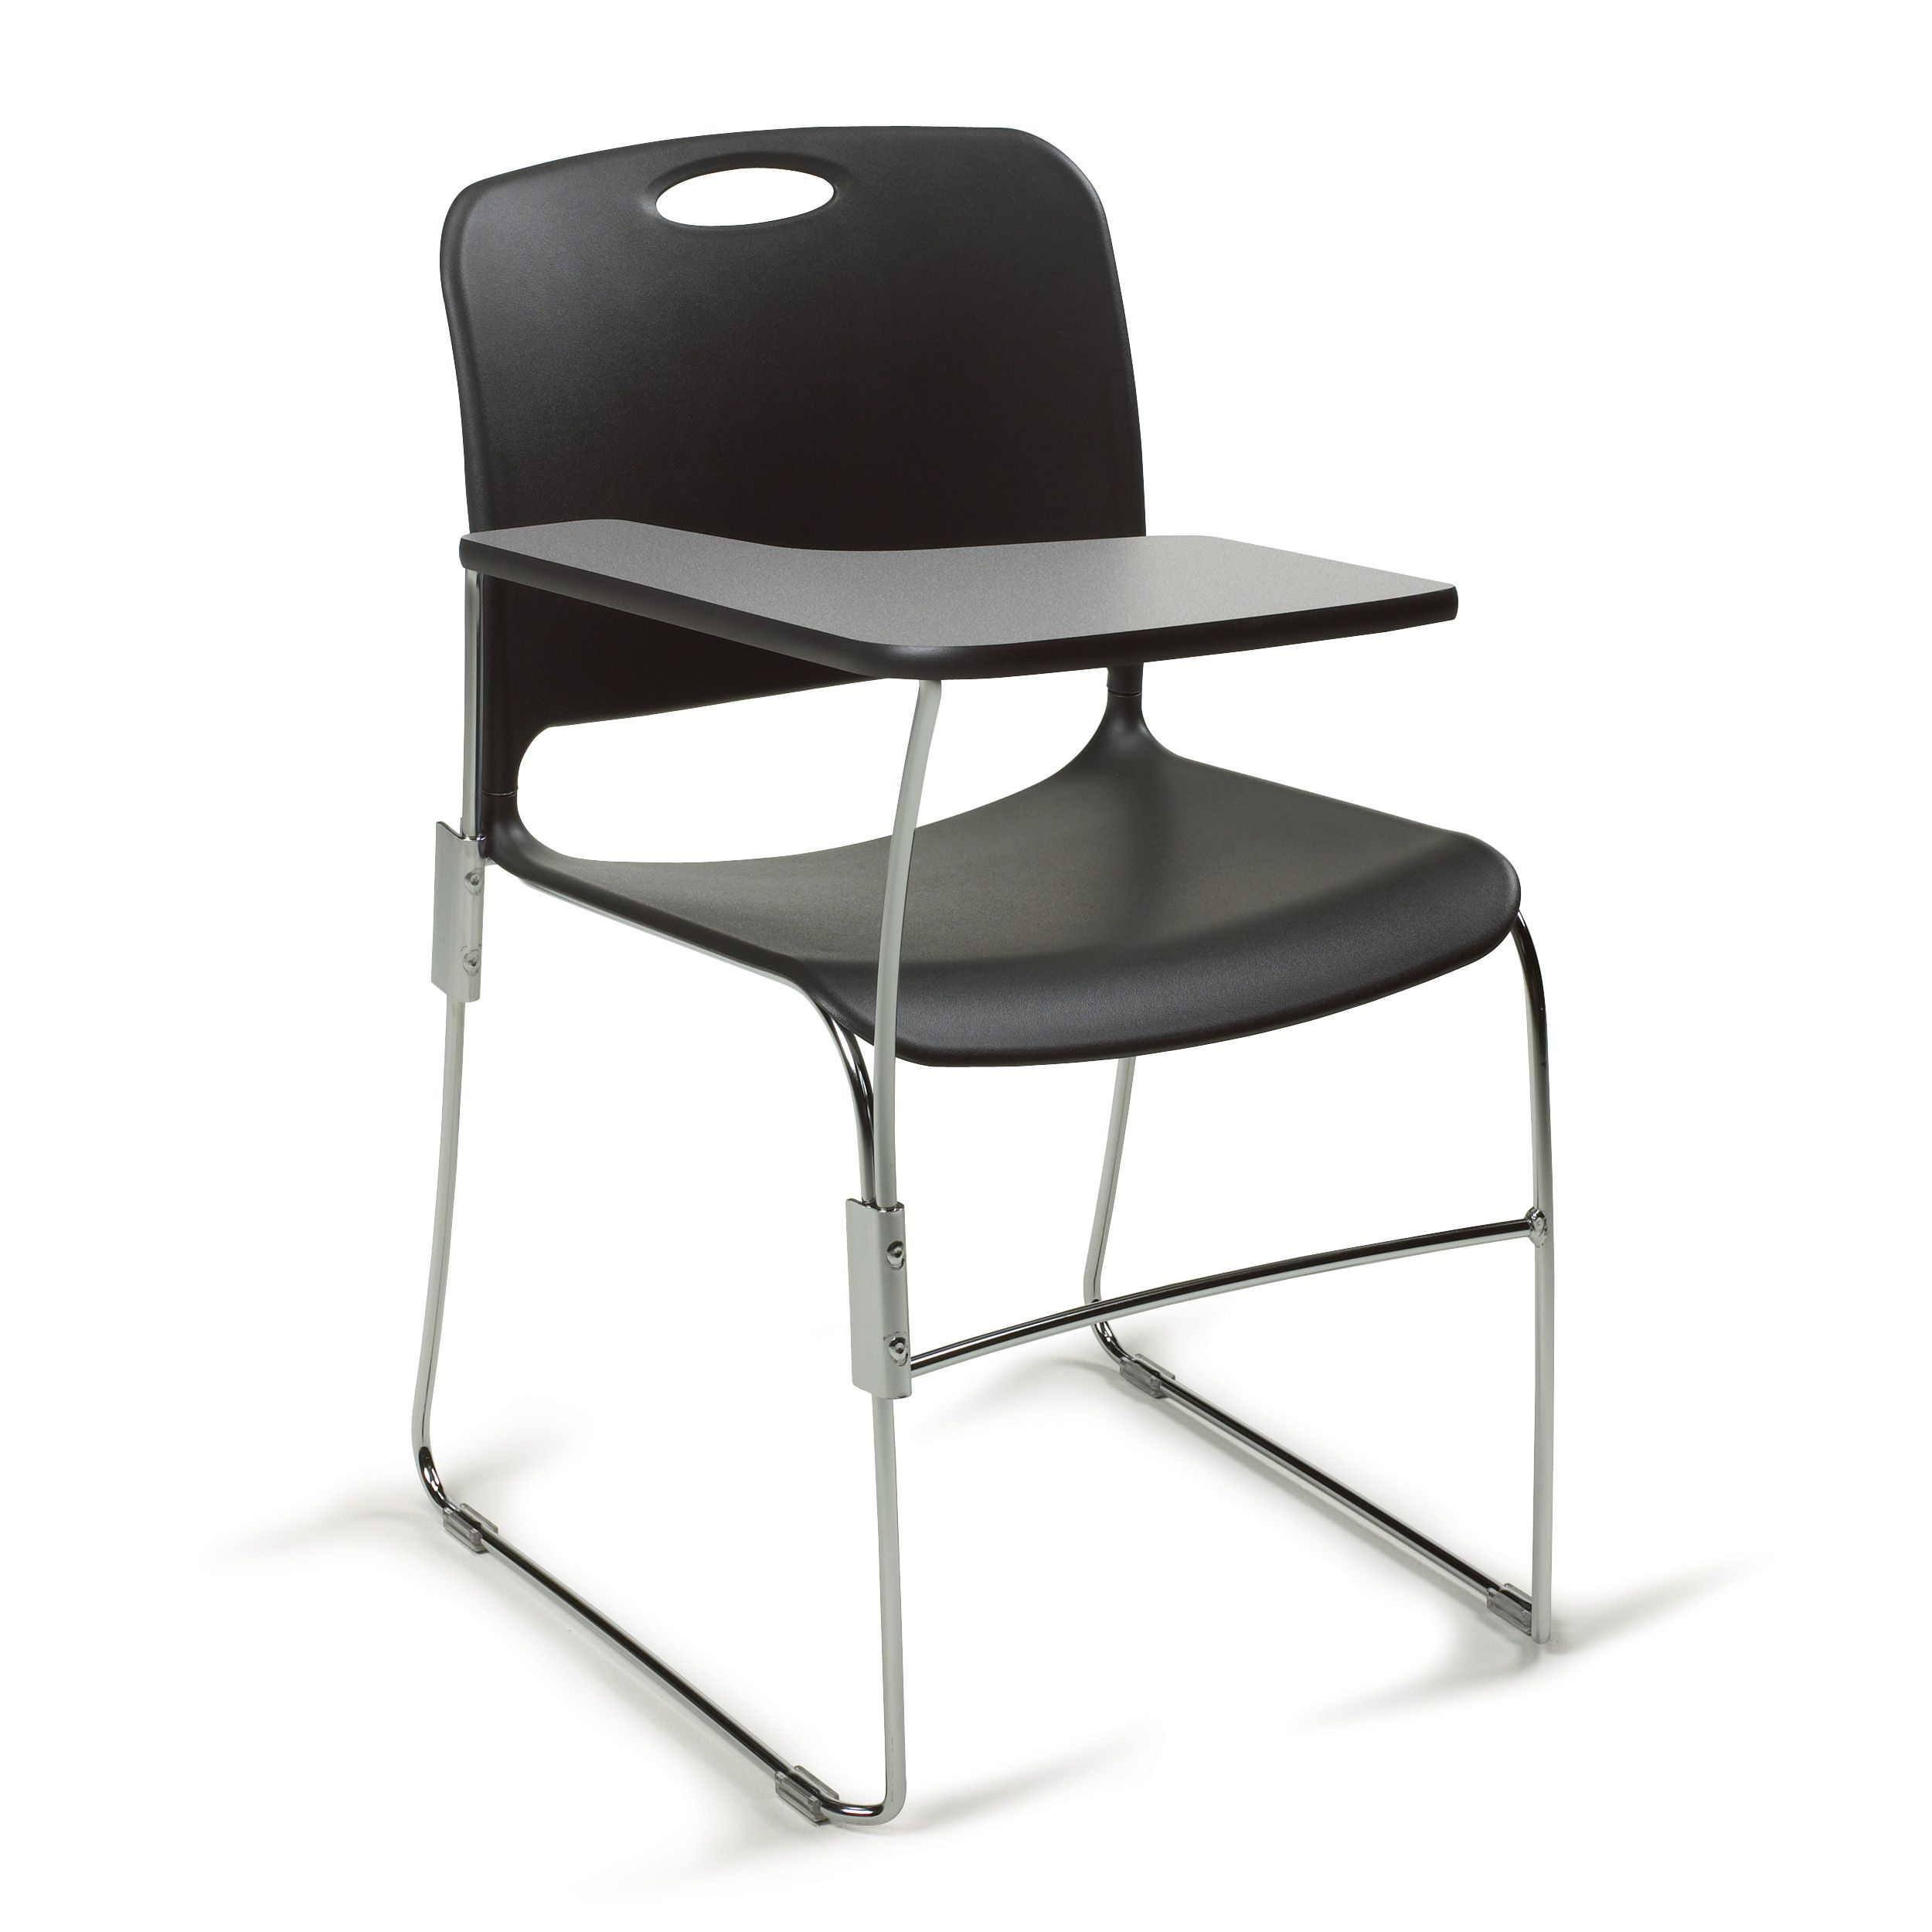 IzzyPlus Fixtures Furniture Webster side chair Arm armless